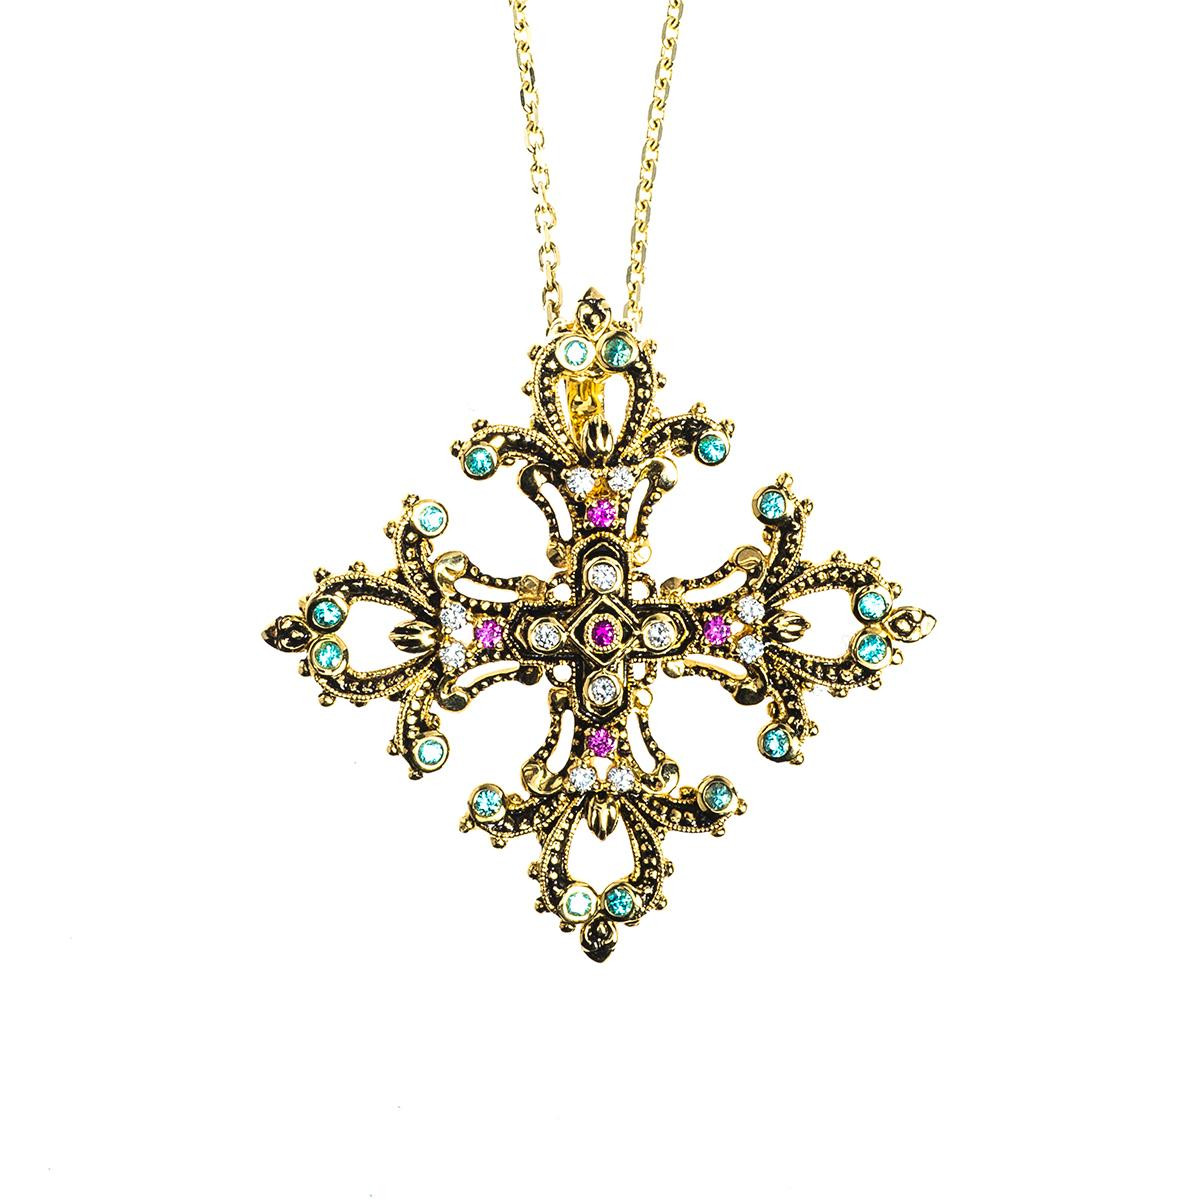 New Judy Mayfield Gemstone Cross Pendant